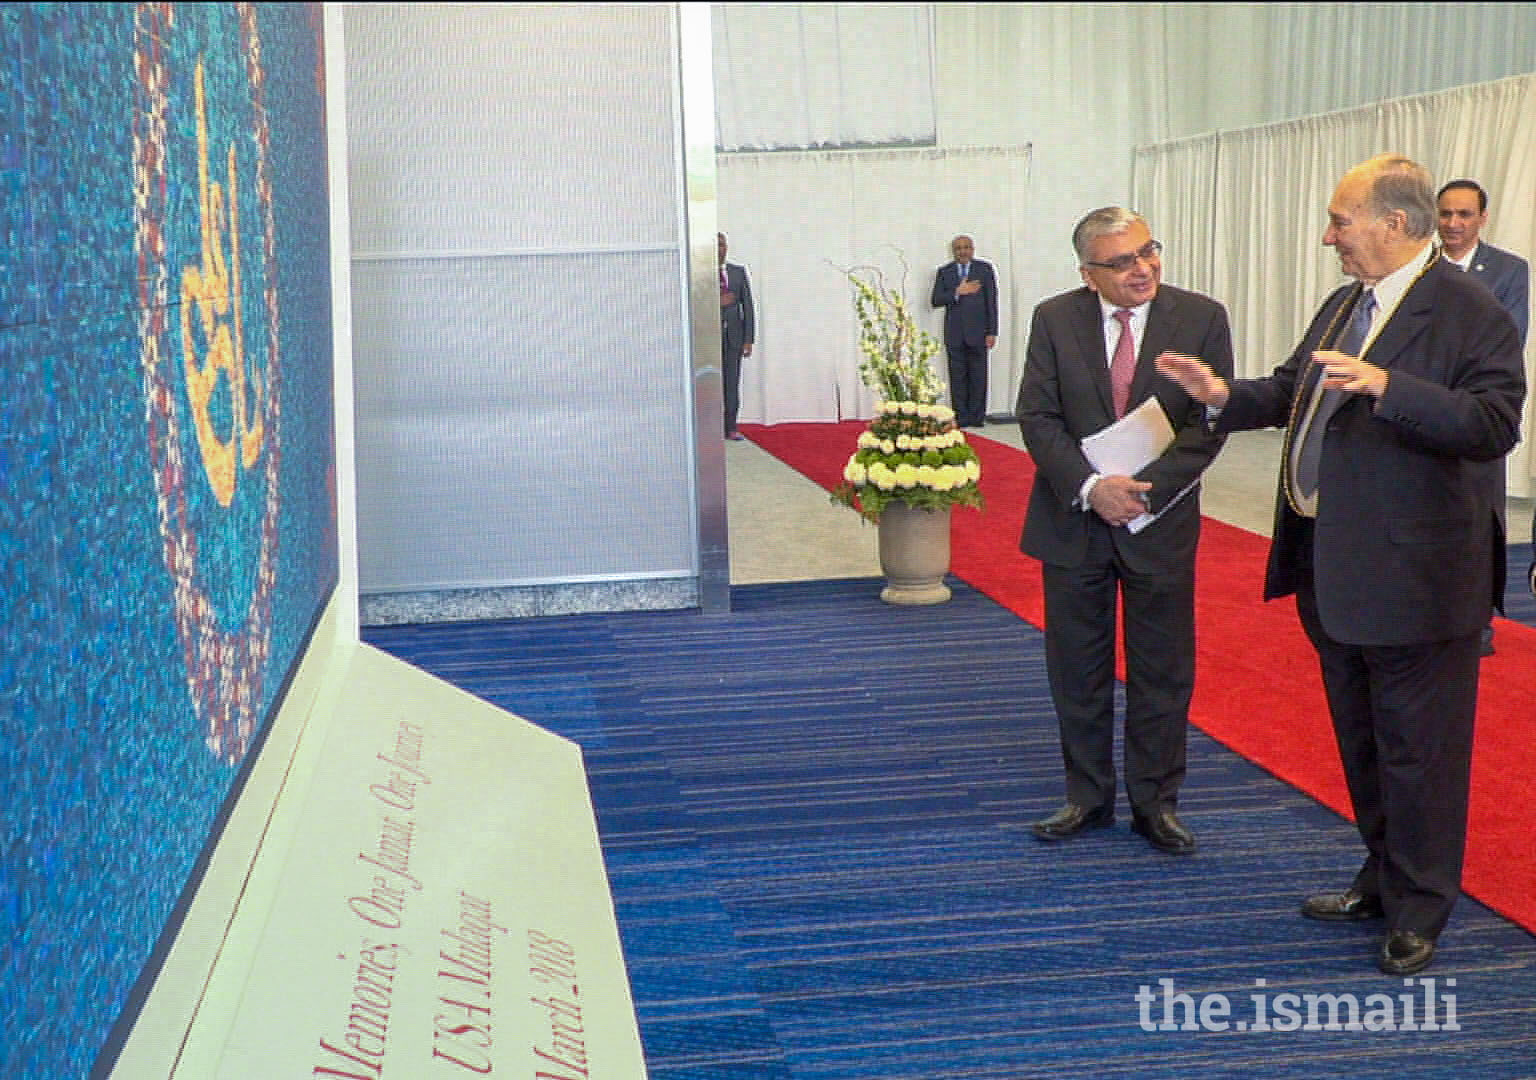 The One Jamat Mosaic — comprising thousands of individual photos into a single, cohesive work of art — was presented to Mawlana Hazar Imam on the morning of Navroz, 21 March 2018, to commemorate his Diamond Jubilee.